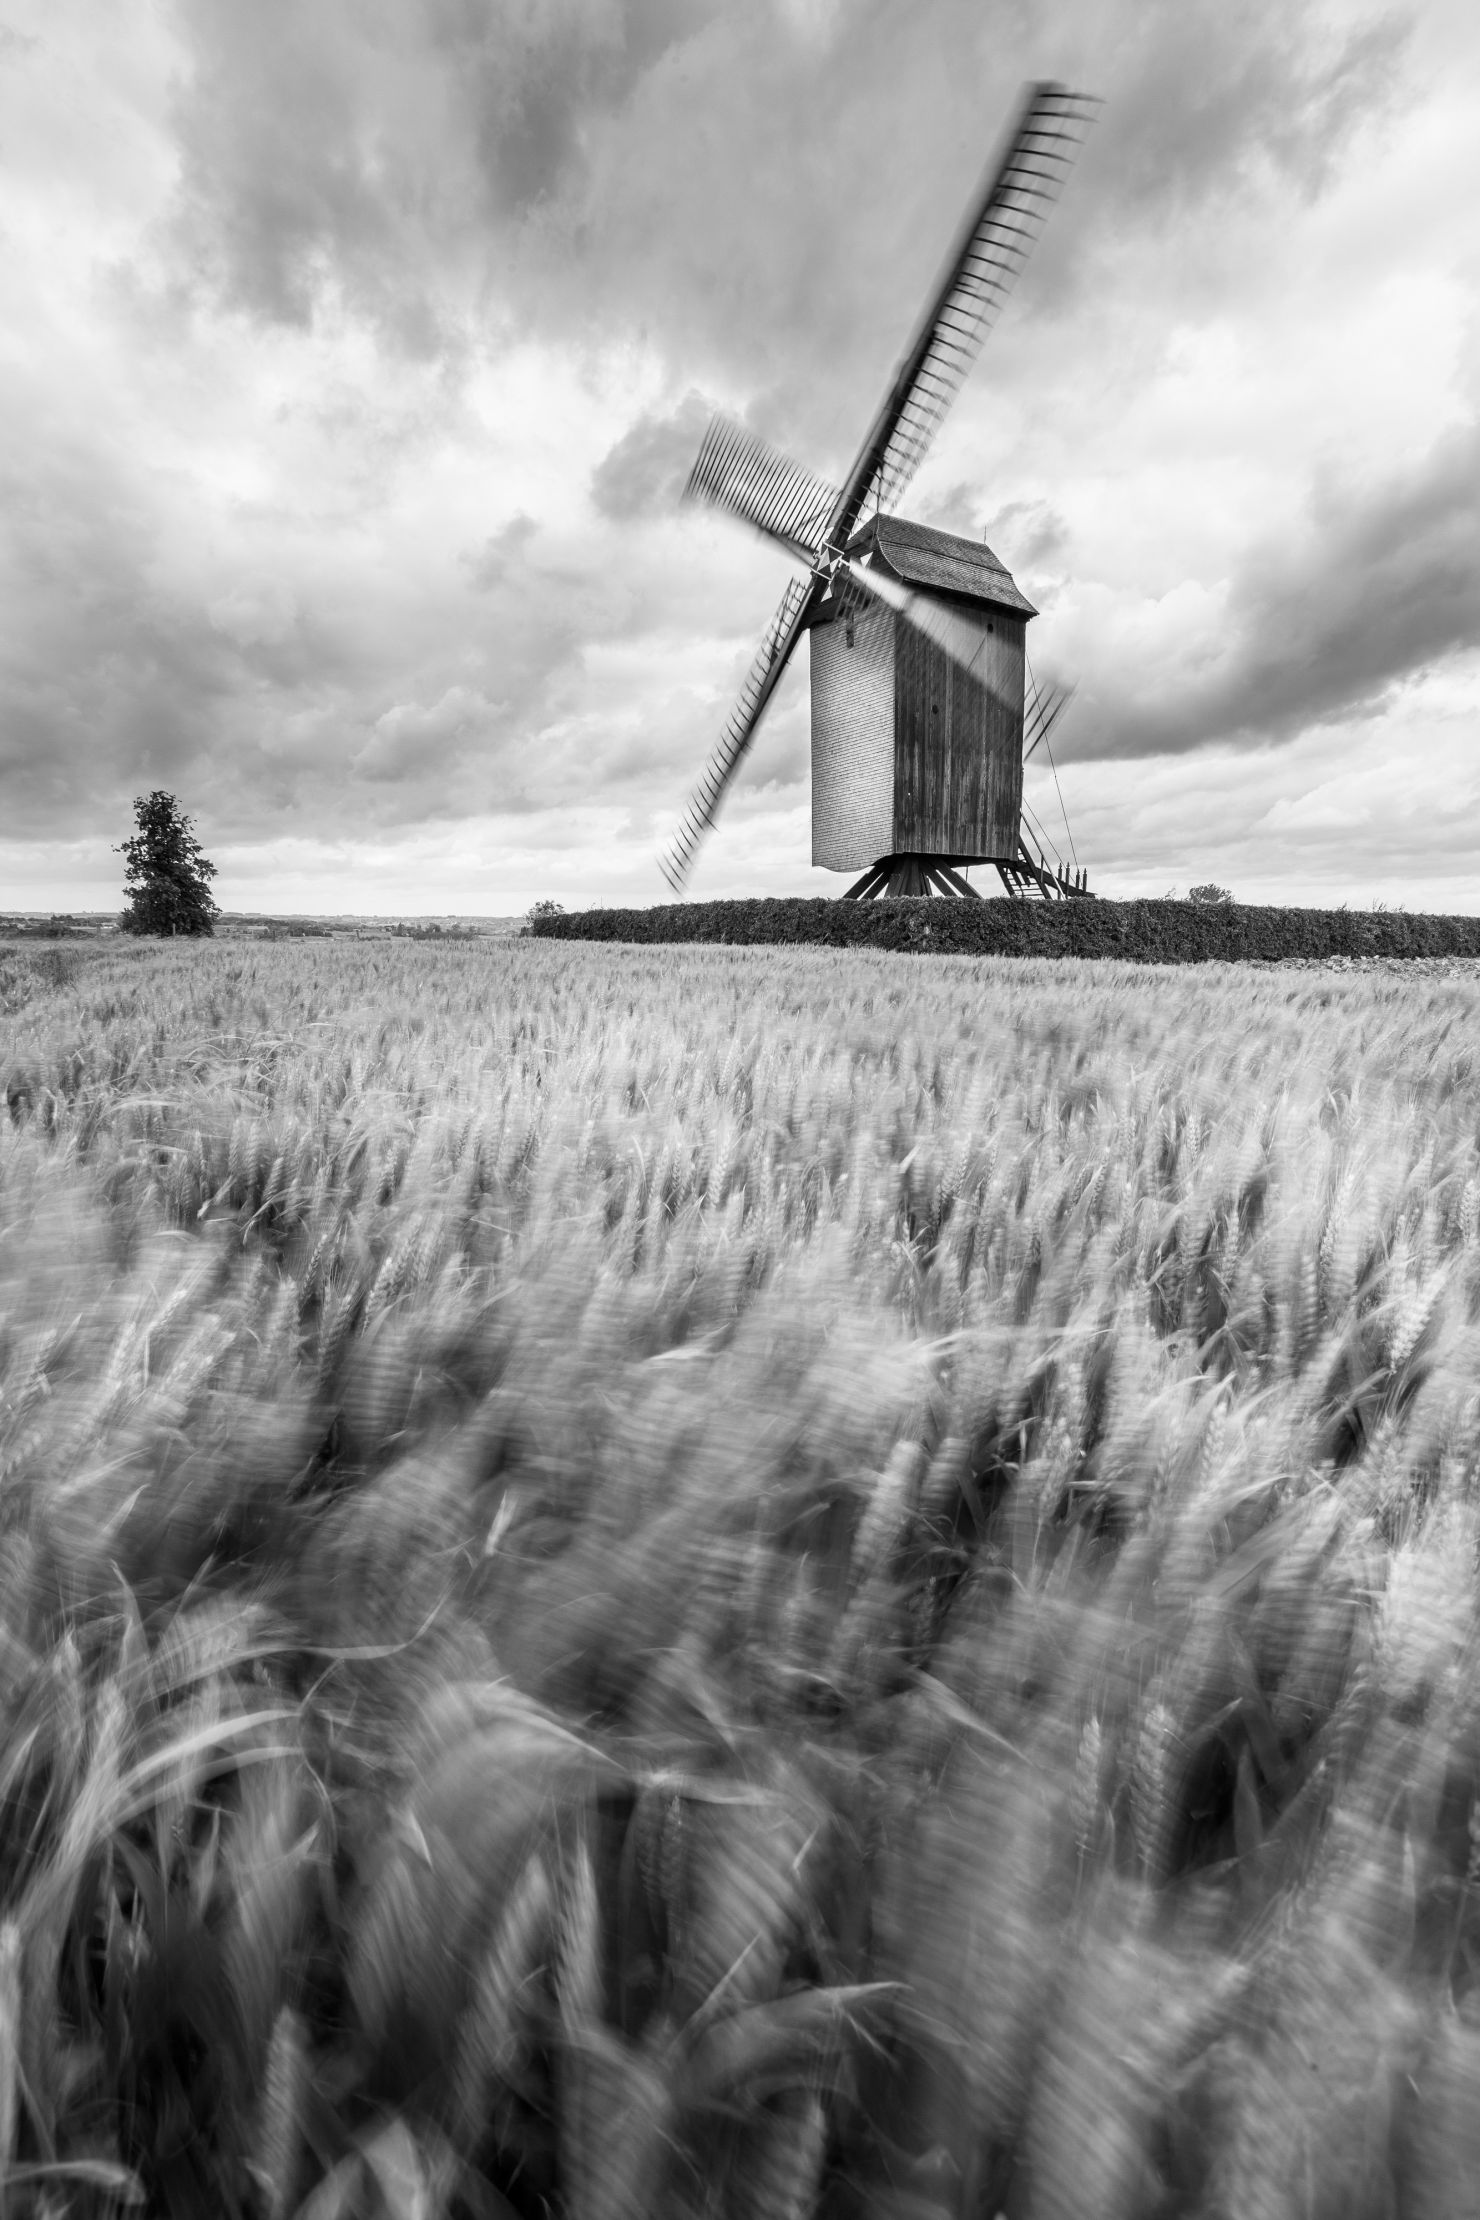 Mill in a field of wheat